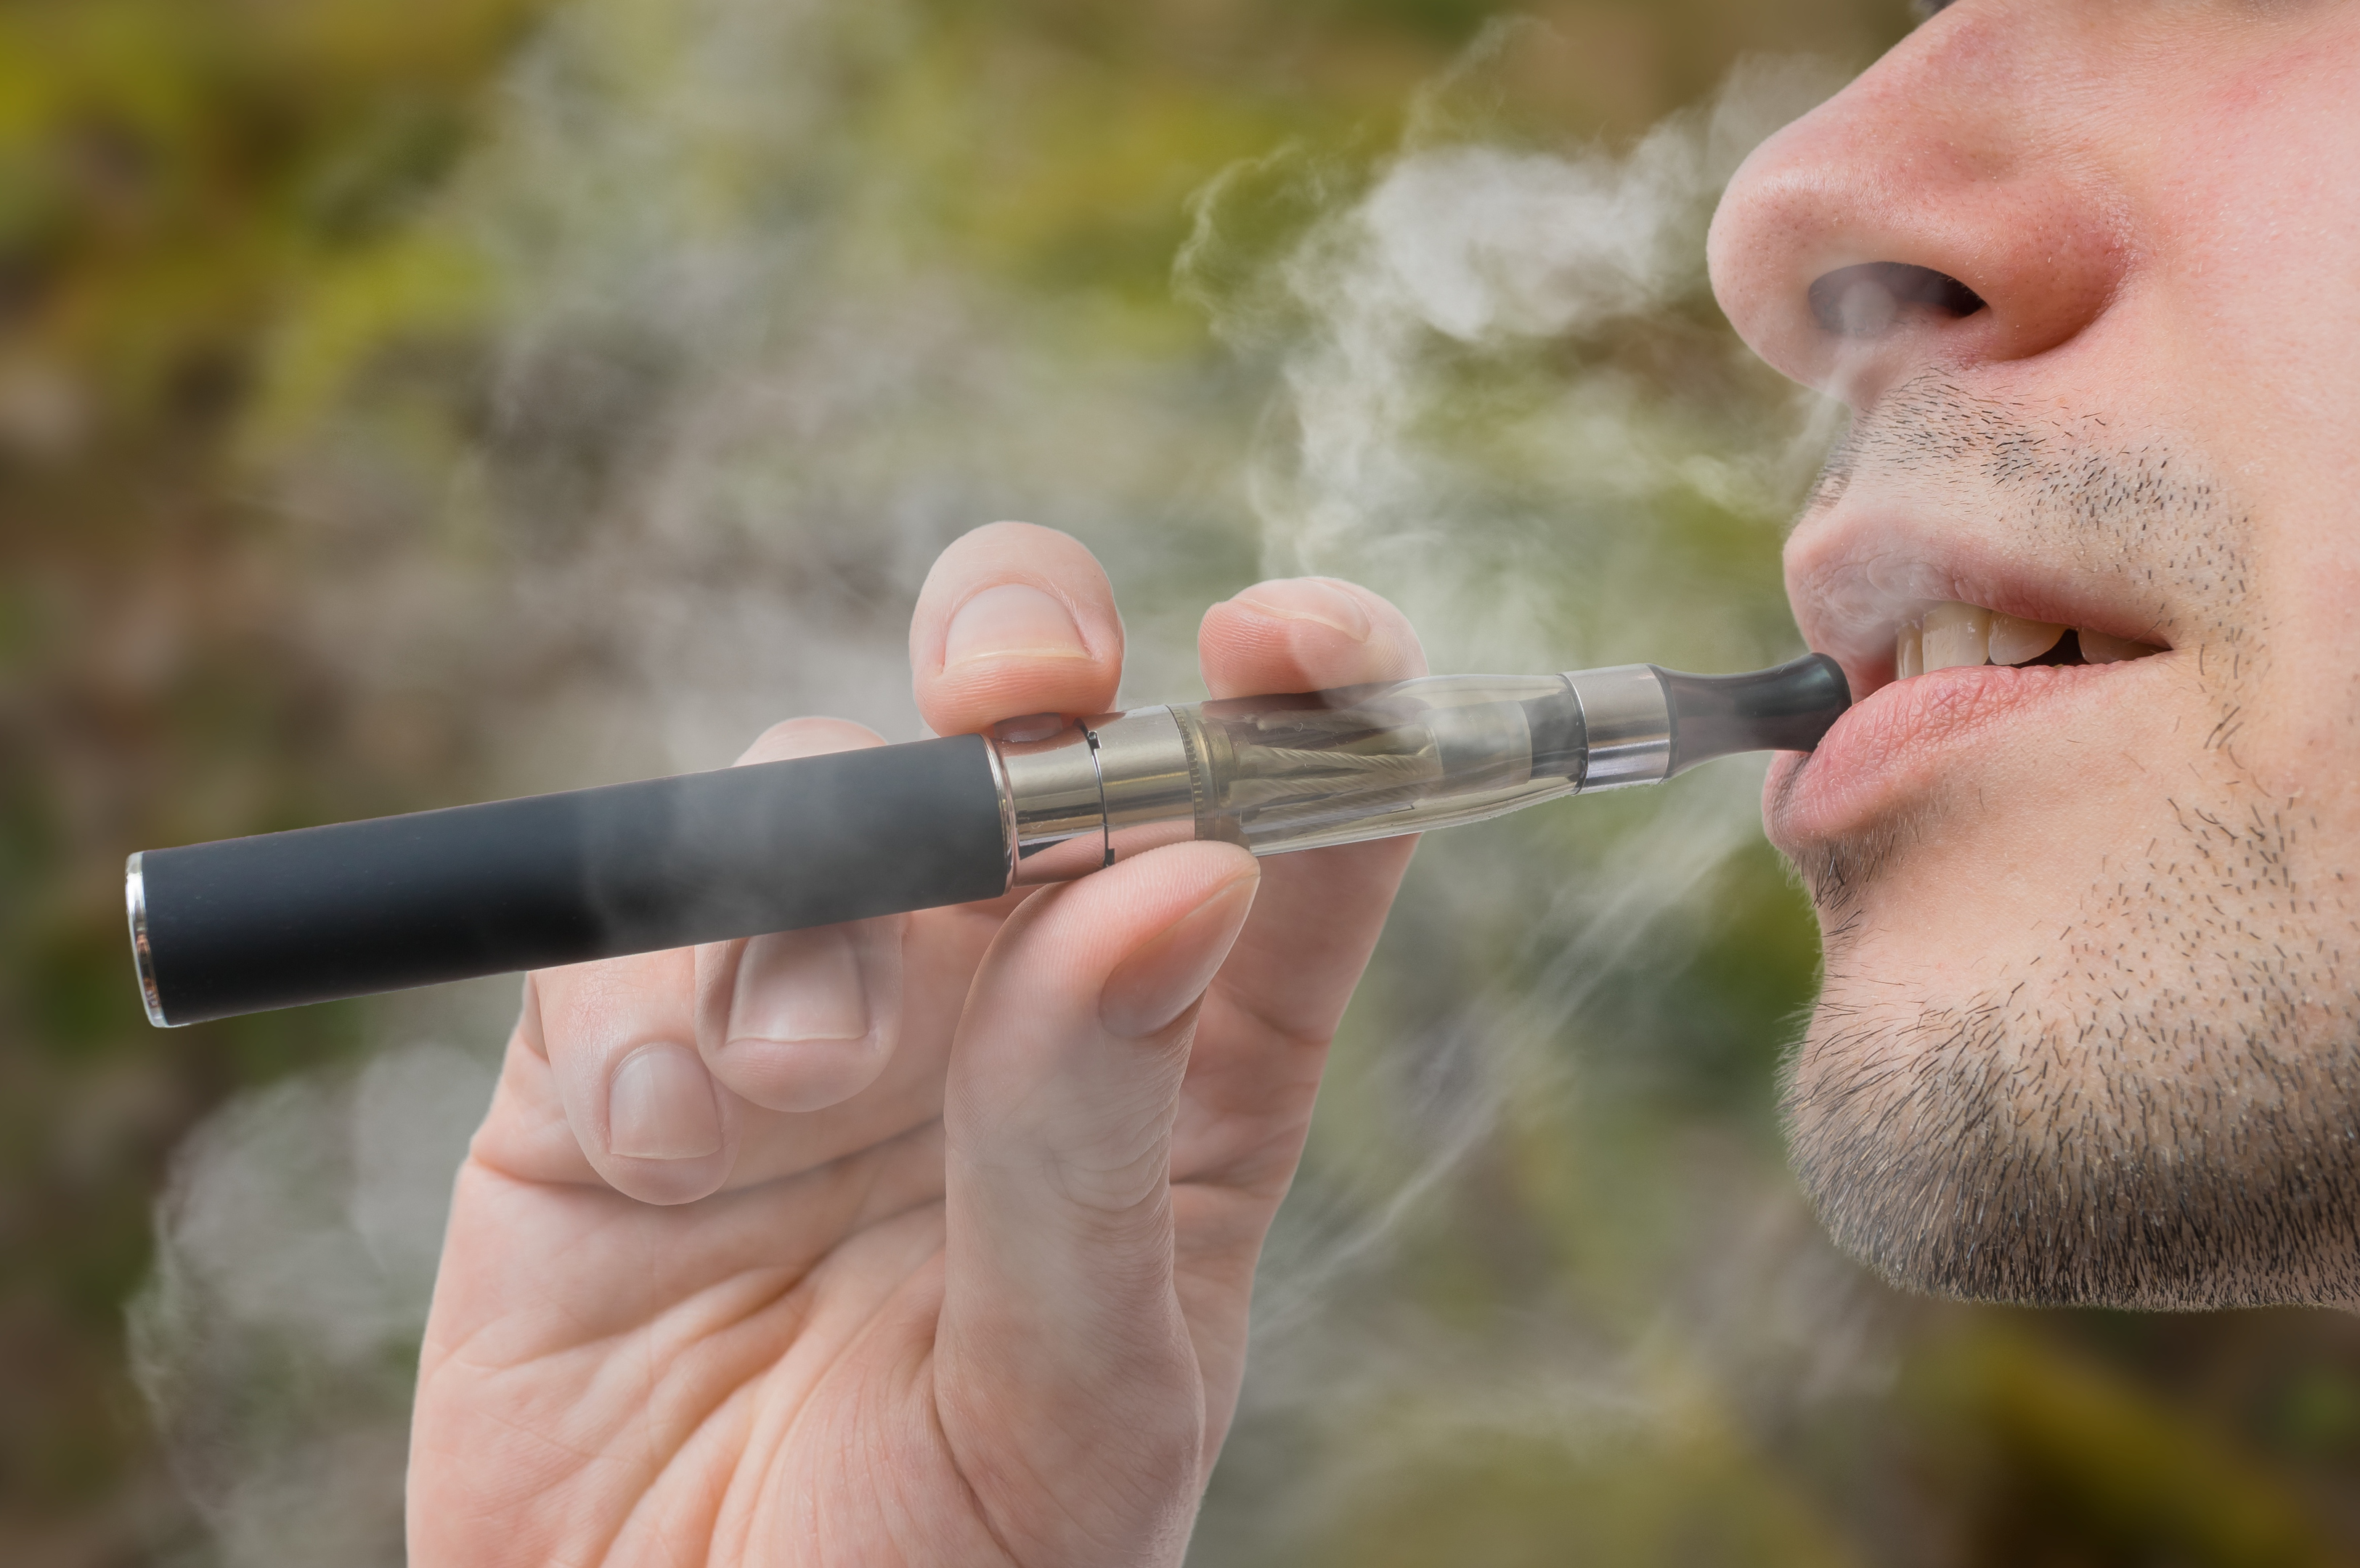 Holy e-smoke! Experts say vaping can help 'cure' sore